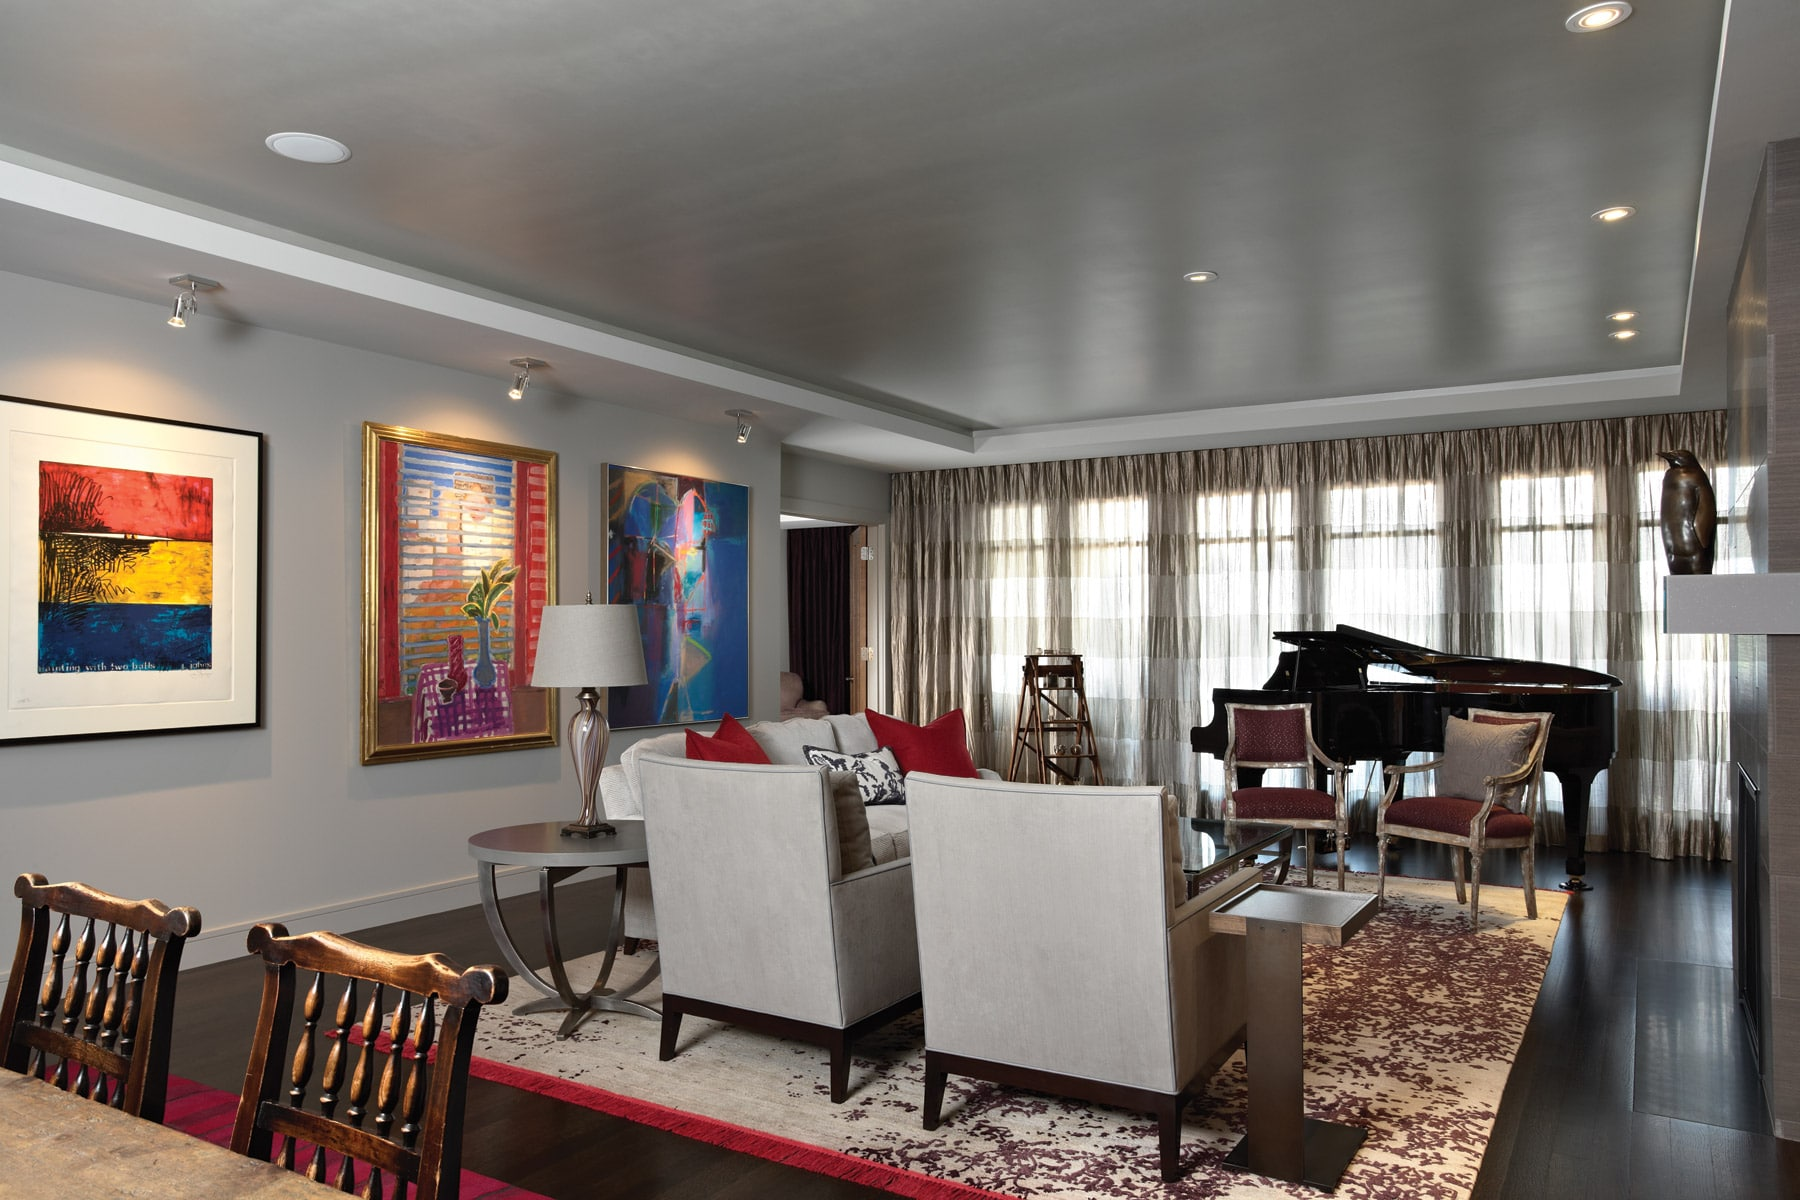 Exceptional-Condominium-Living-Room-Minneapolis-interior-designer.jpeg